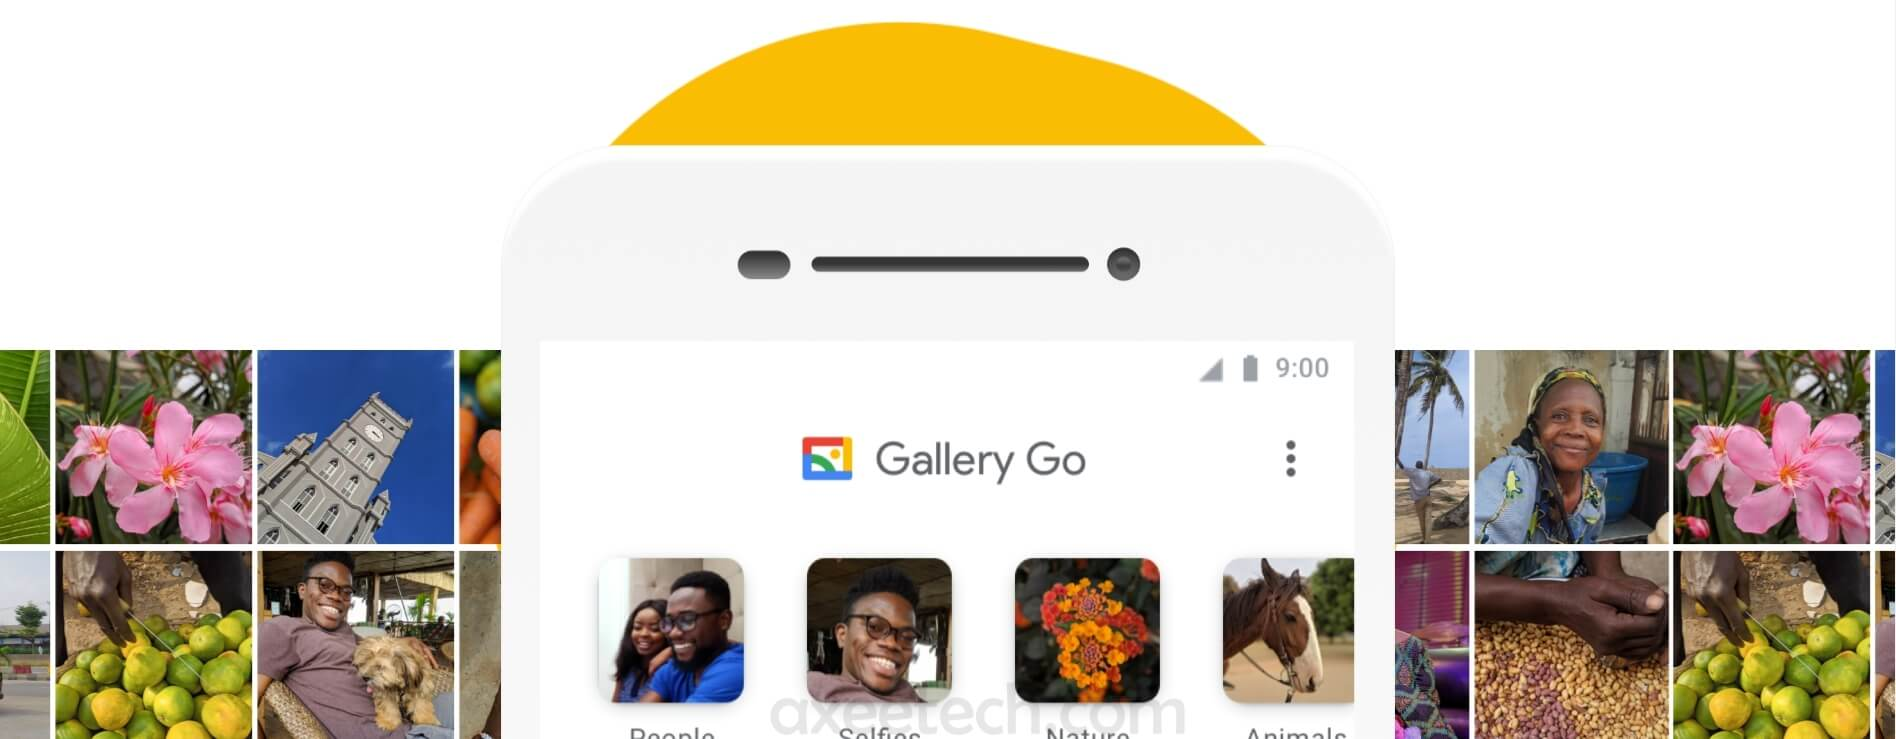 Google Gallery Go Apk for Android a new Lightweight Google